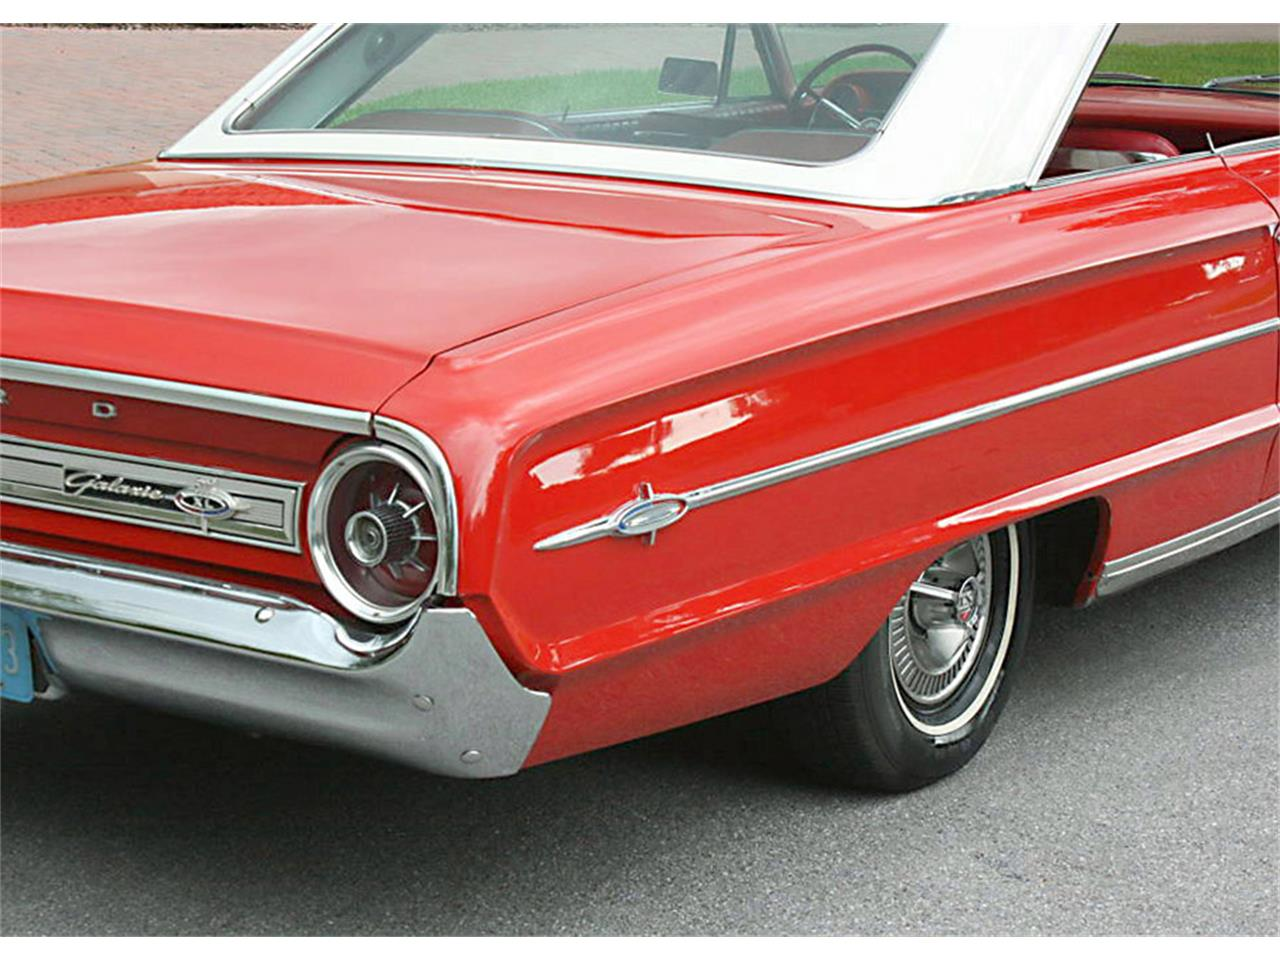 Large Picture of 1964 Ford Galaxie 500 - $27,500.00 - NOH3